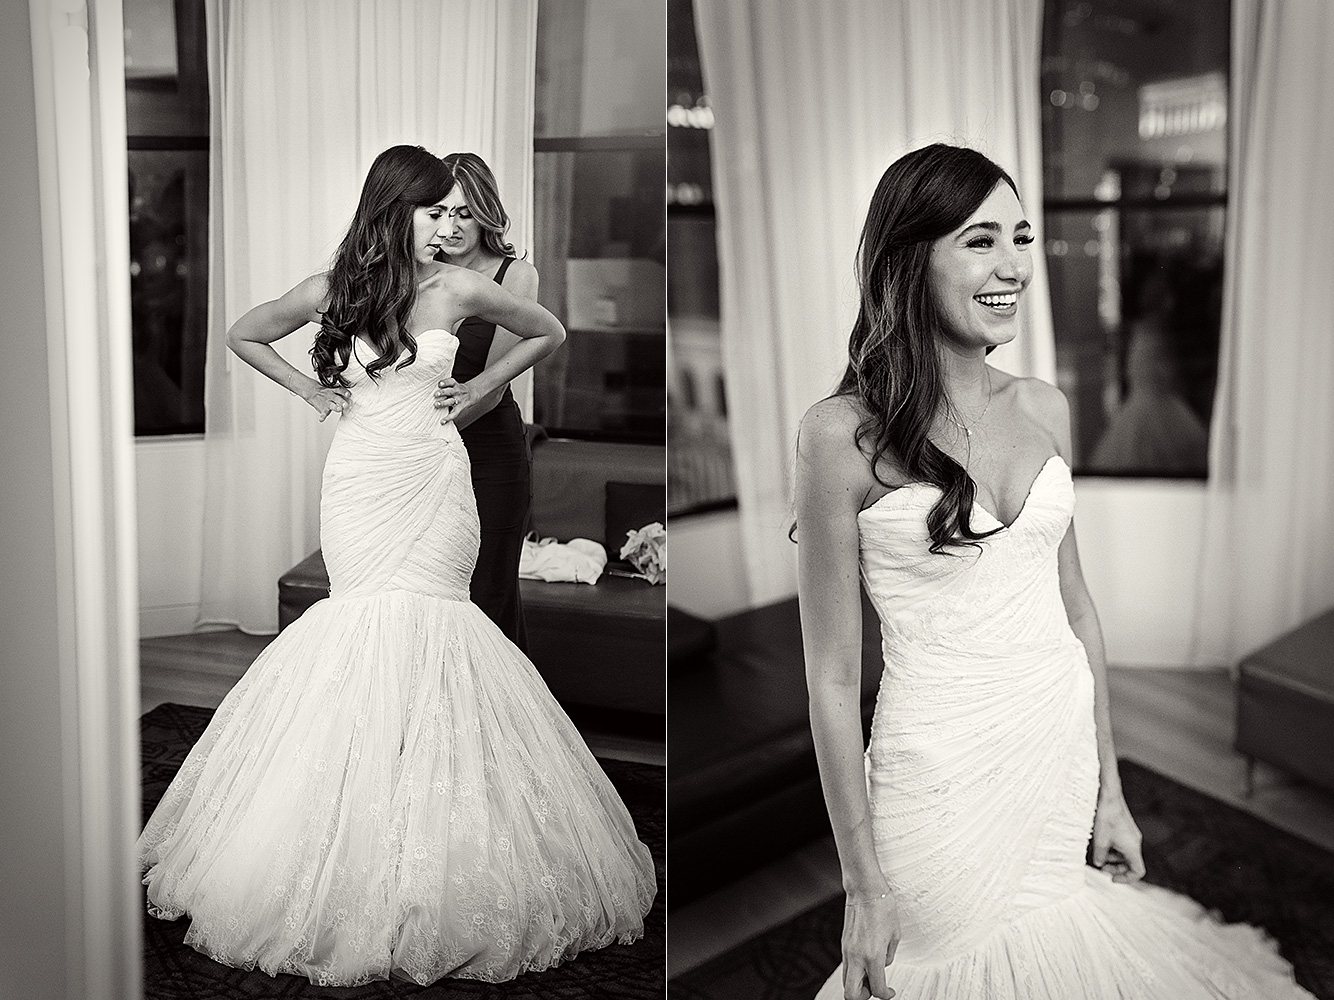 NYC_Wedding_Photographer_DaAd_Wed_Blog_10.jpg